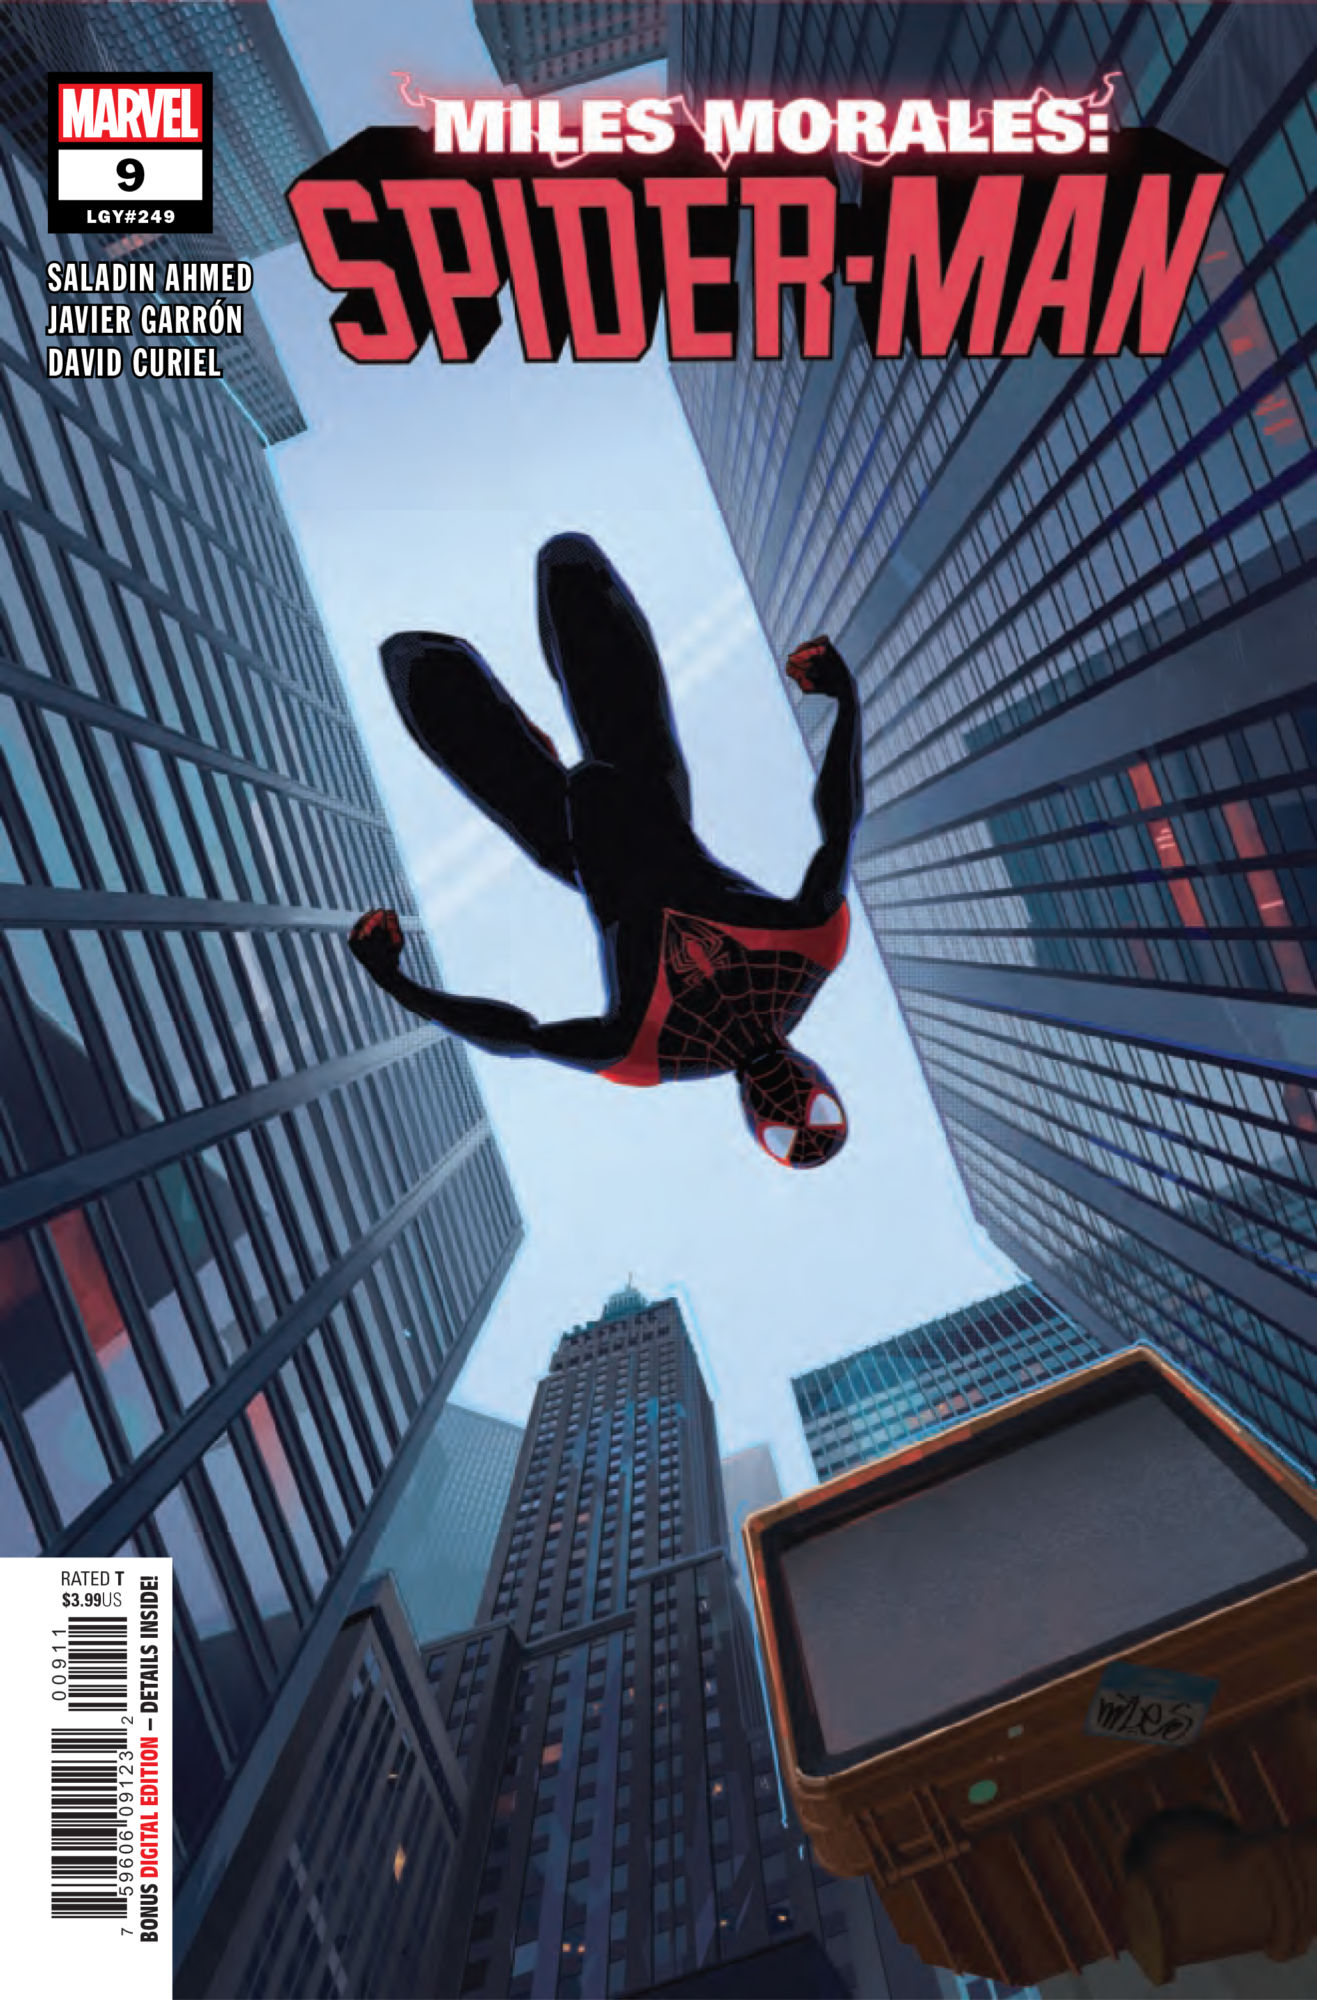 Family to the Rescue in Miles Morales: Spider-Man #9 [Preview]